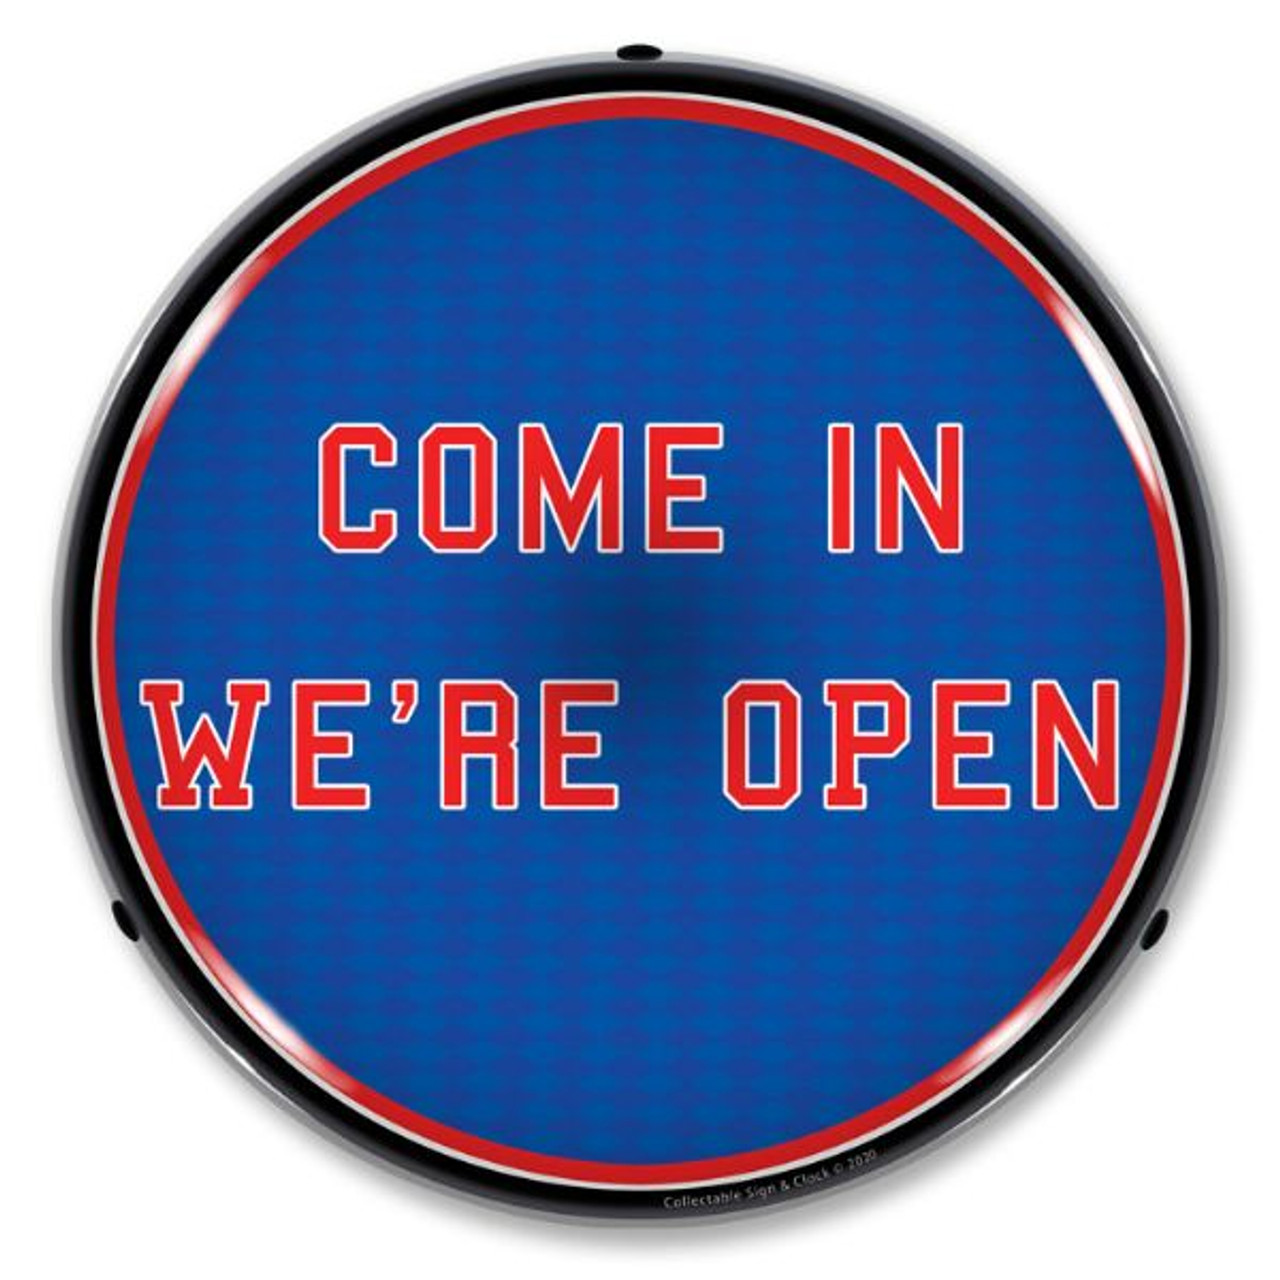 Come in Were Open LED Lighted Business Sign 14 x 14 Inches